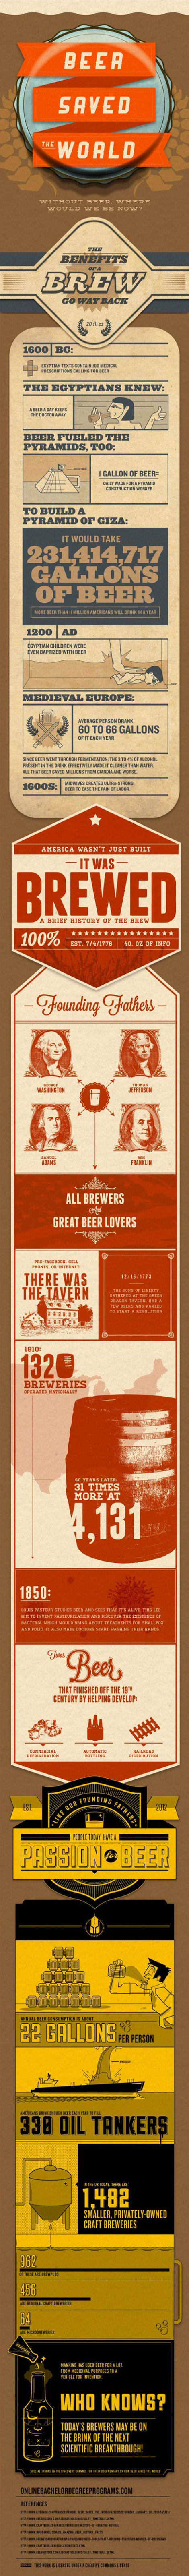 infographic-beer-saved-the-world